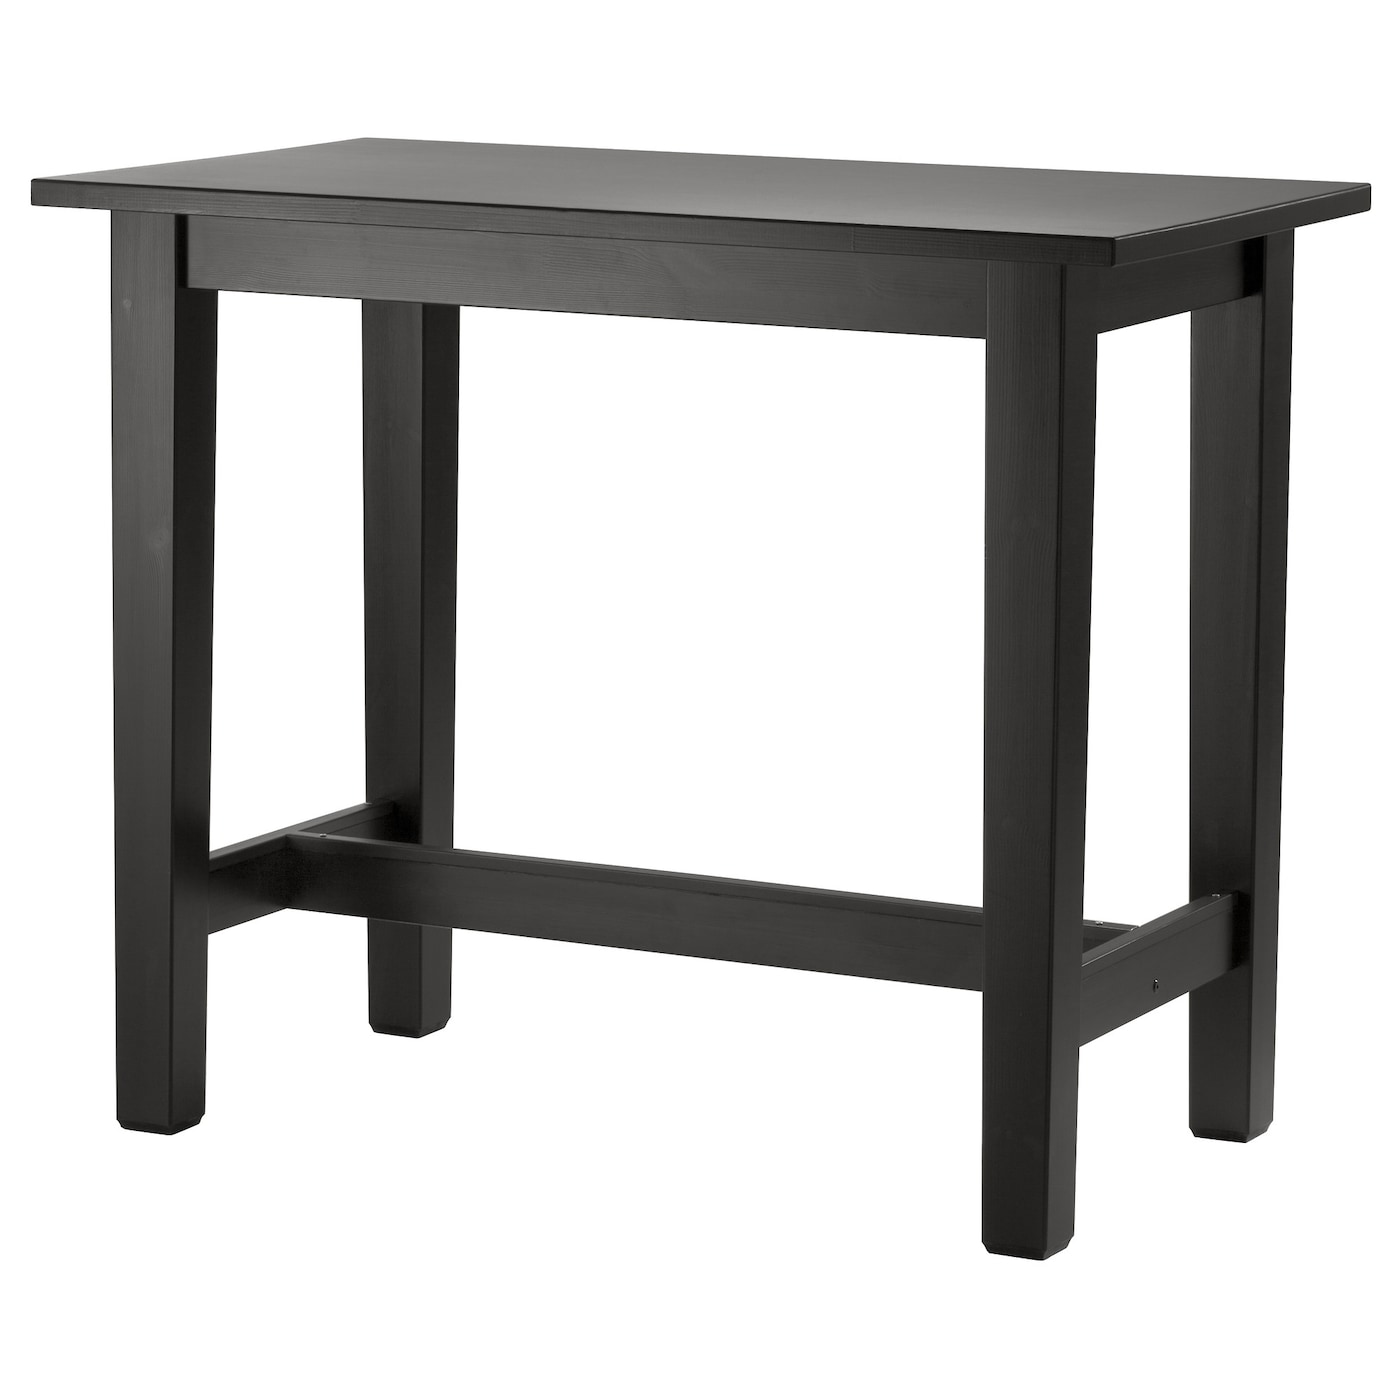 bar table breakfast bar table ikea. Black Bedroom Furniture Sets. Home Design Ideas